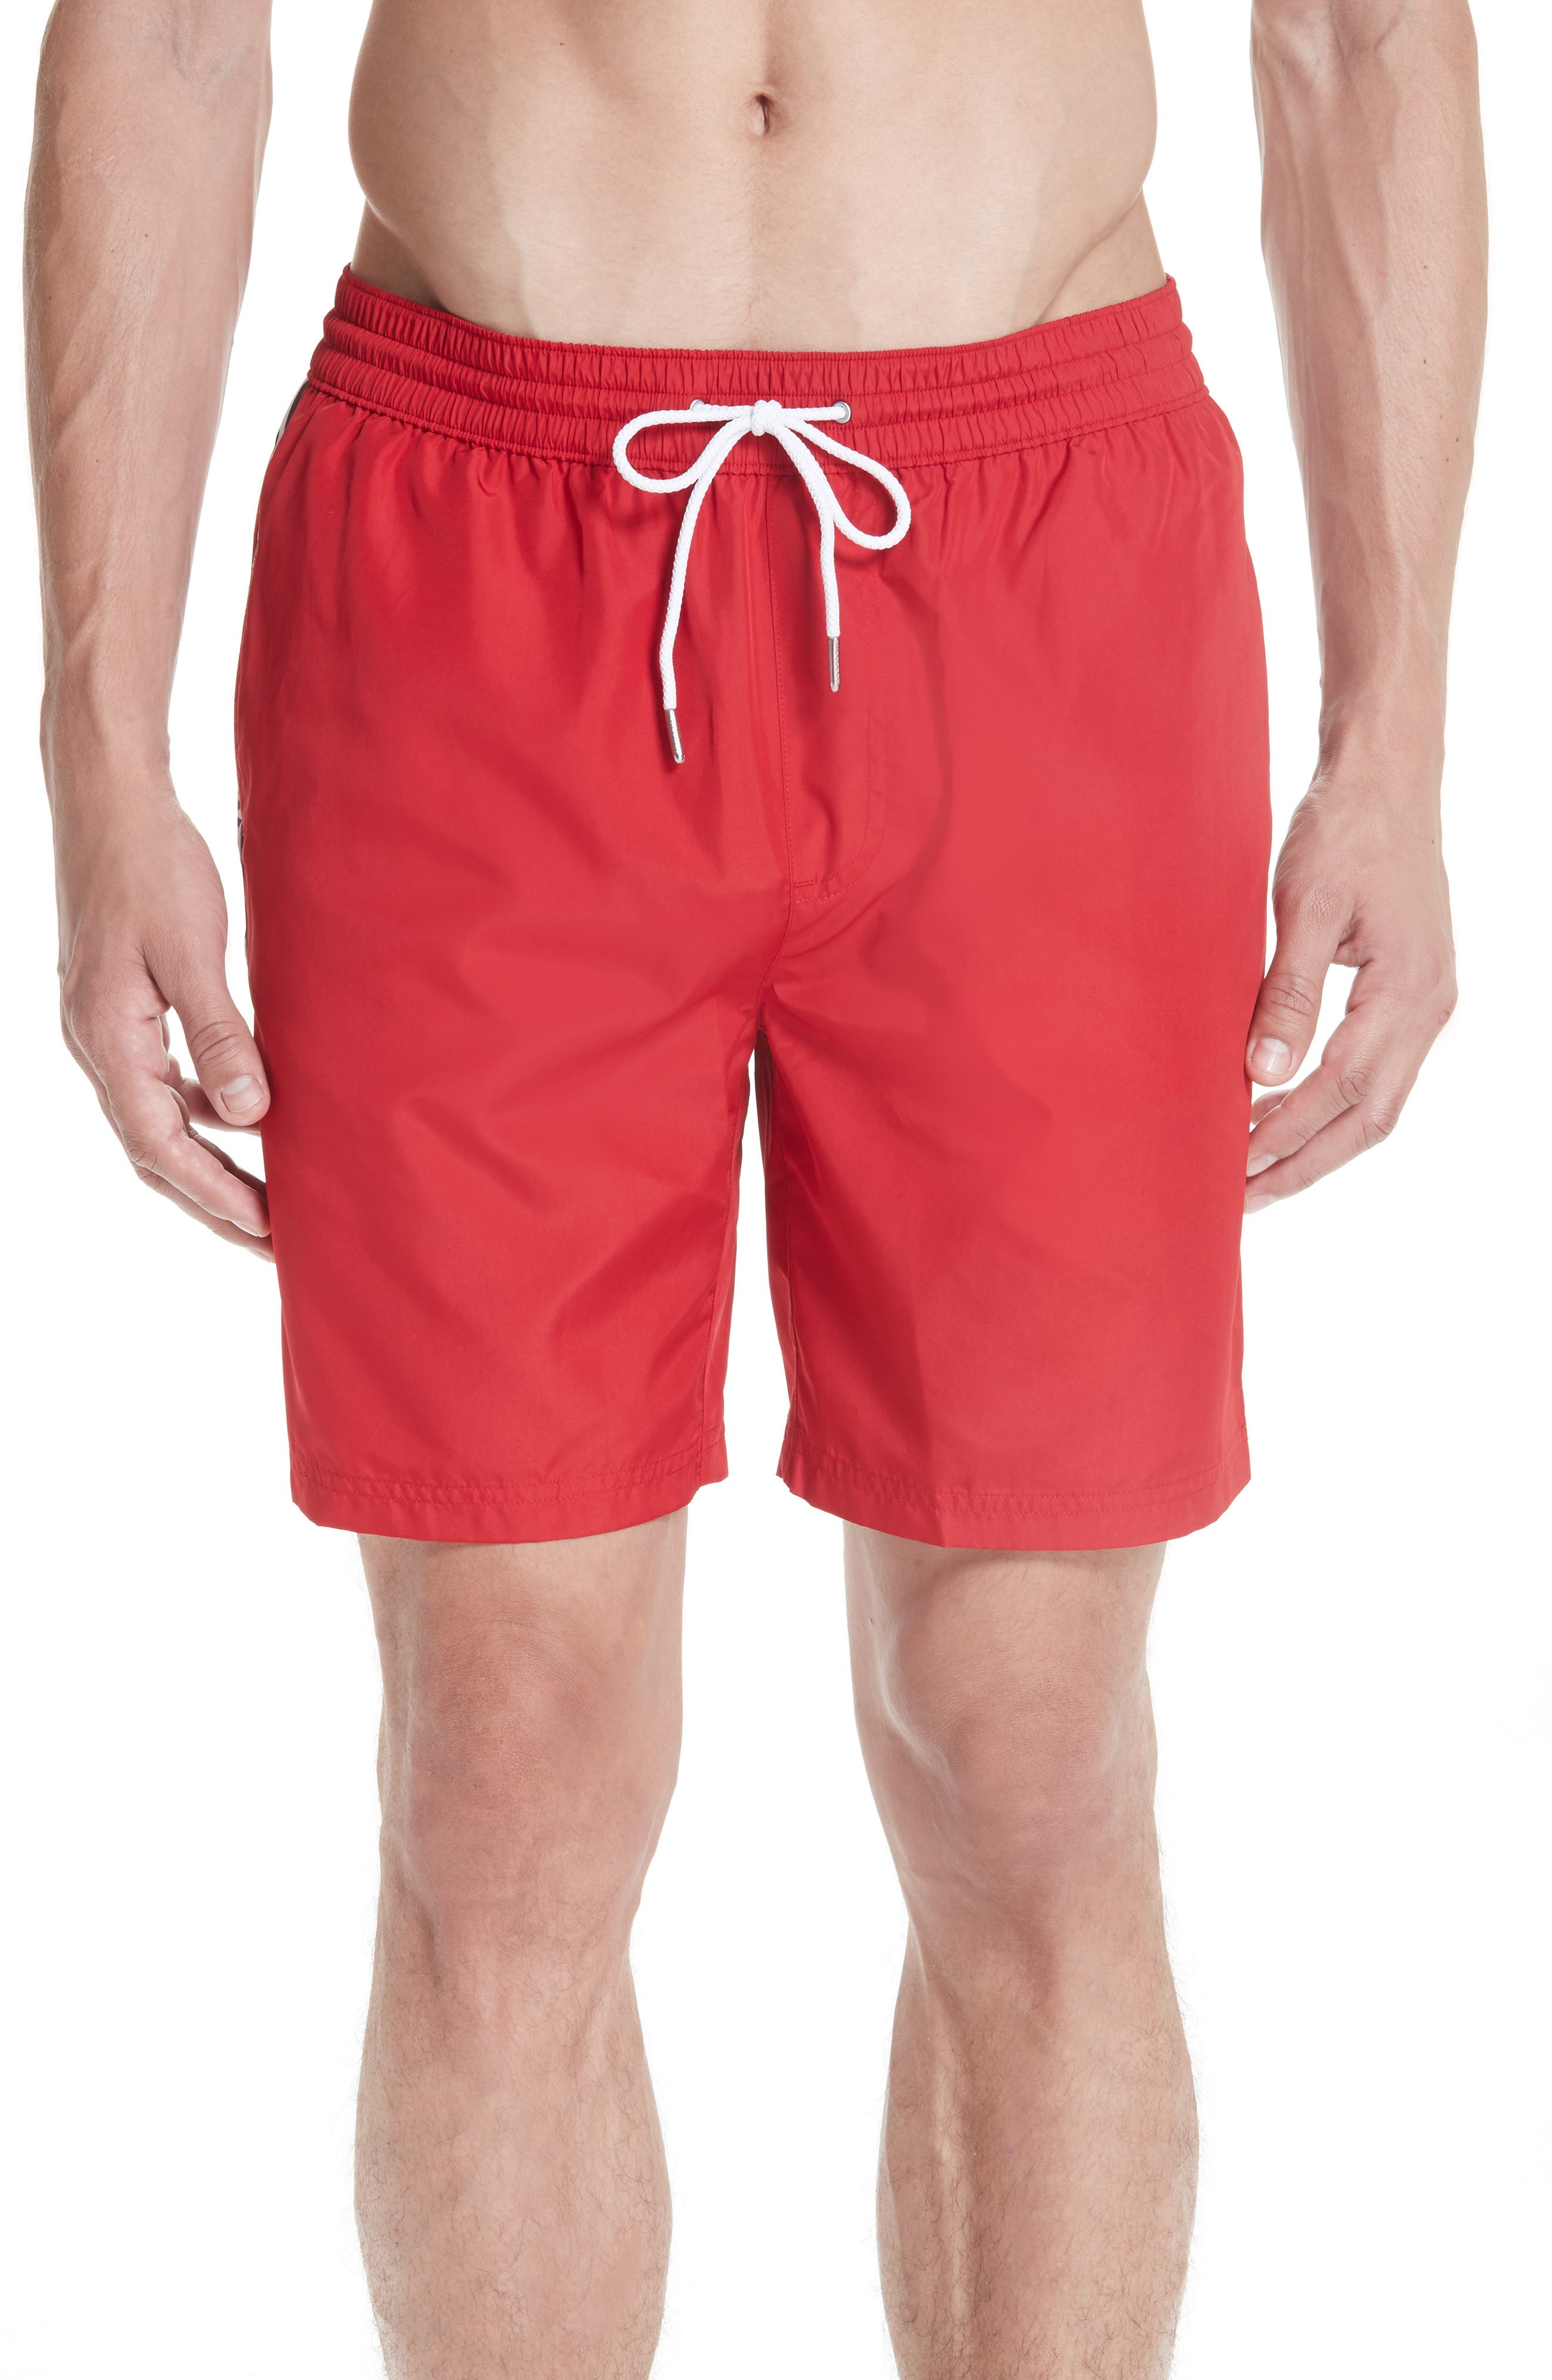 Guildes Swim Trunks,                             Main thumbnail 1, color,                             PARADE RED